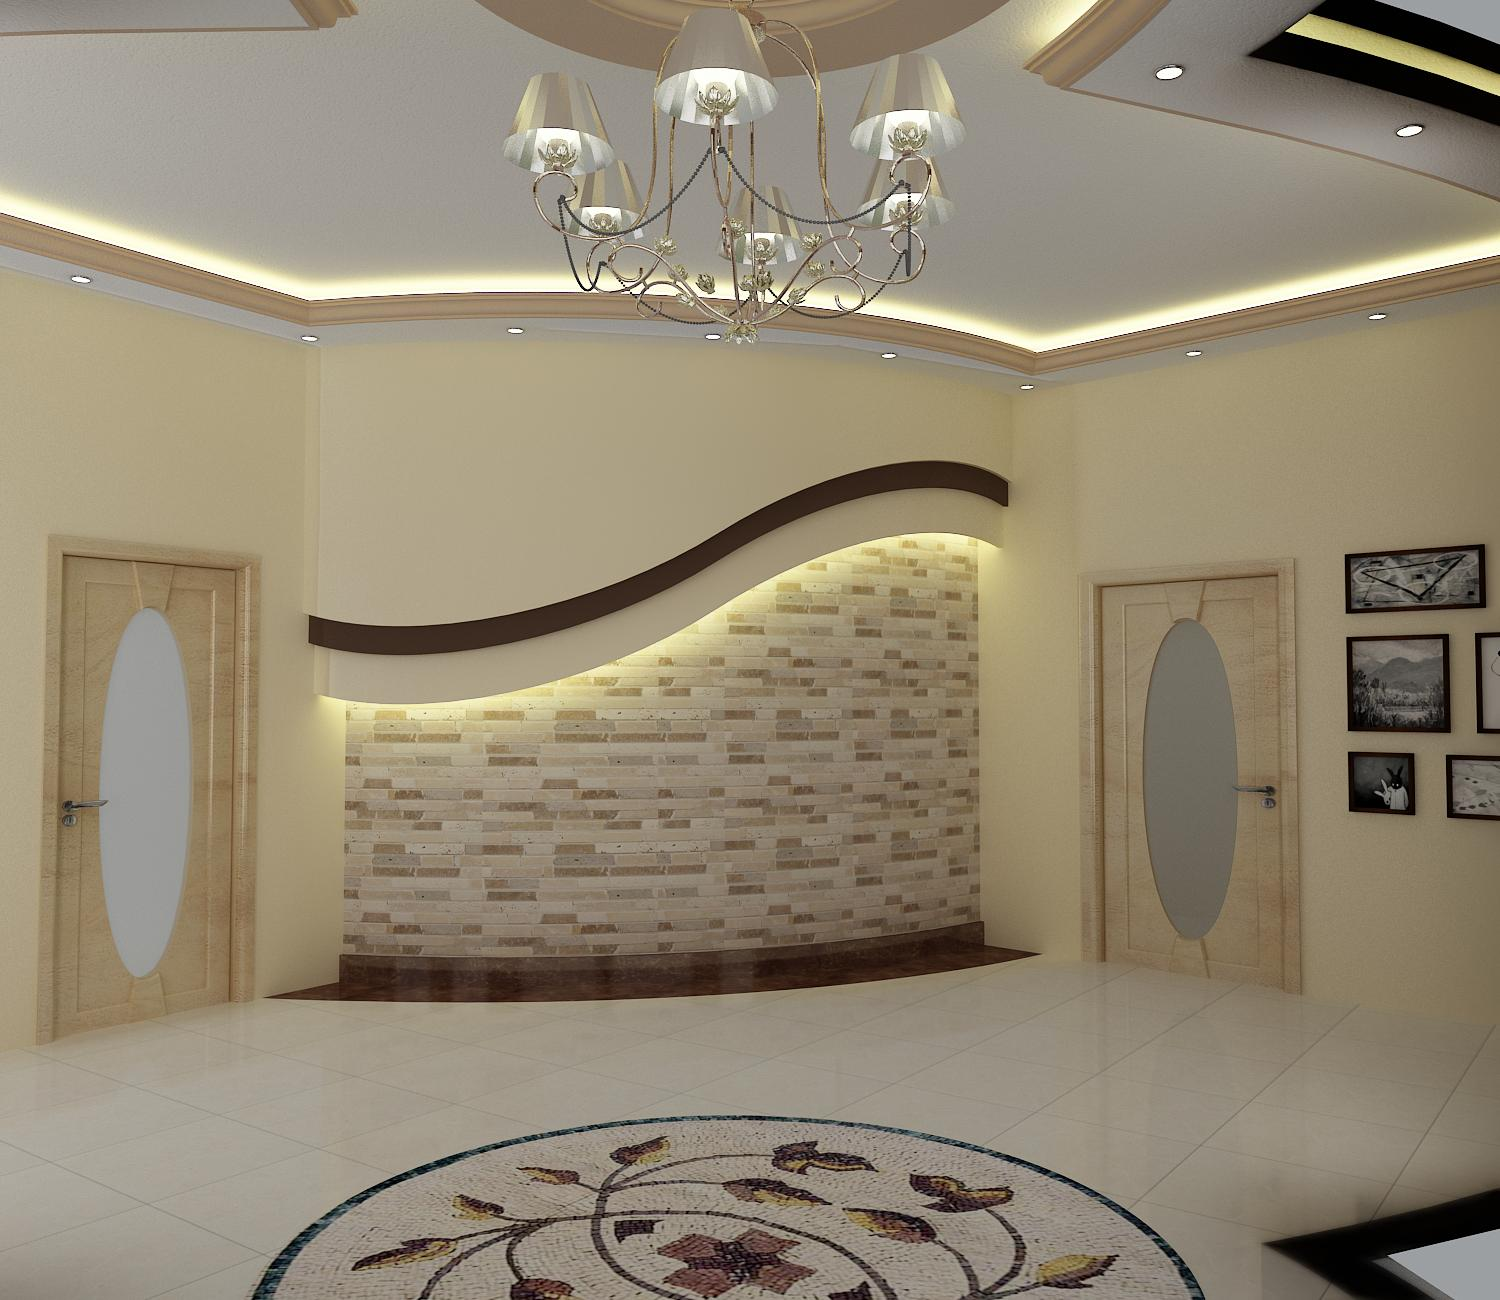 Wasim riaz interior design for a arabic mujlis for Interior design photos